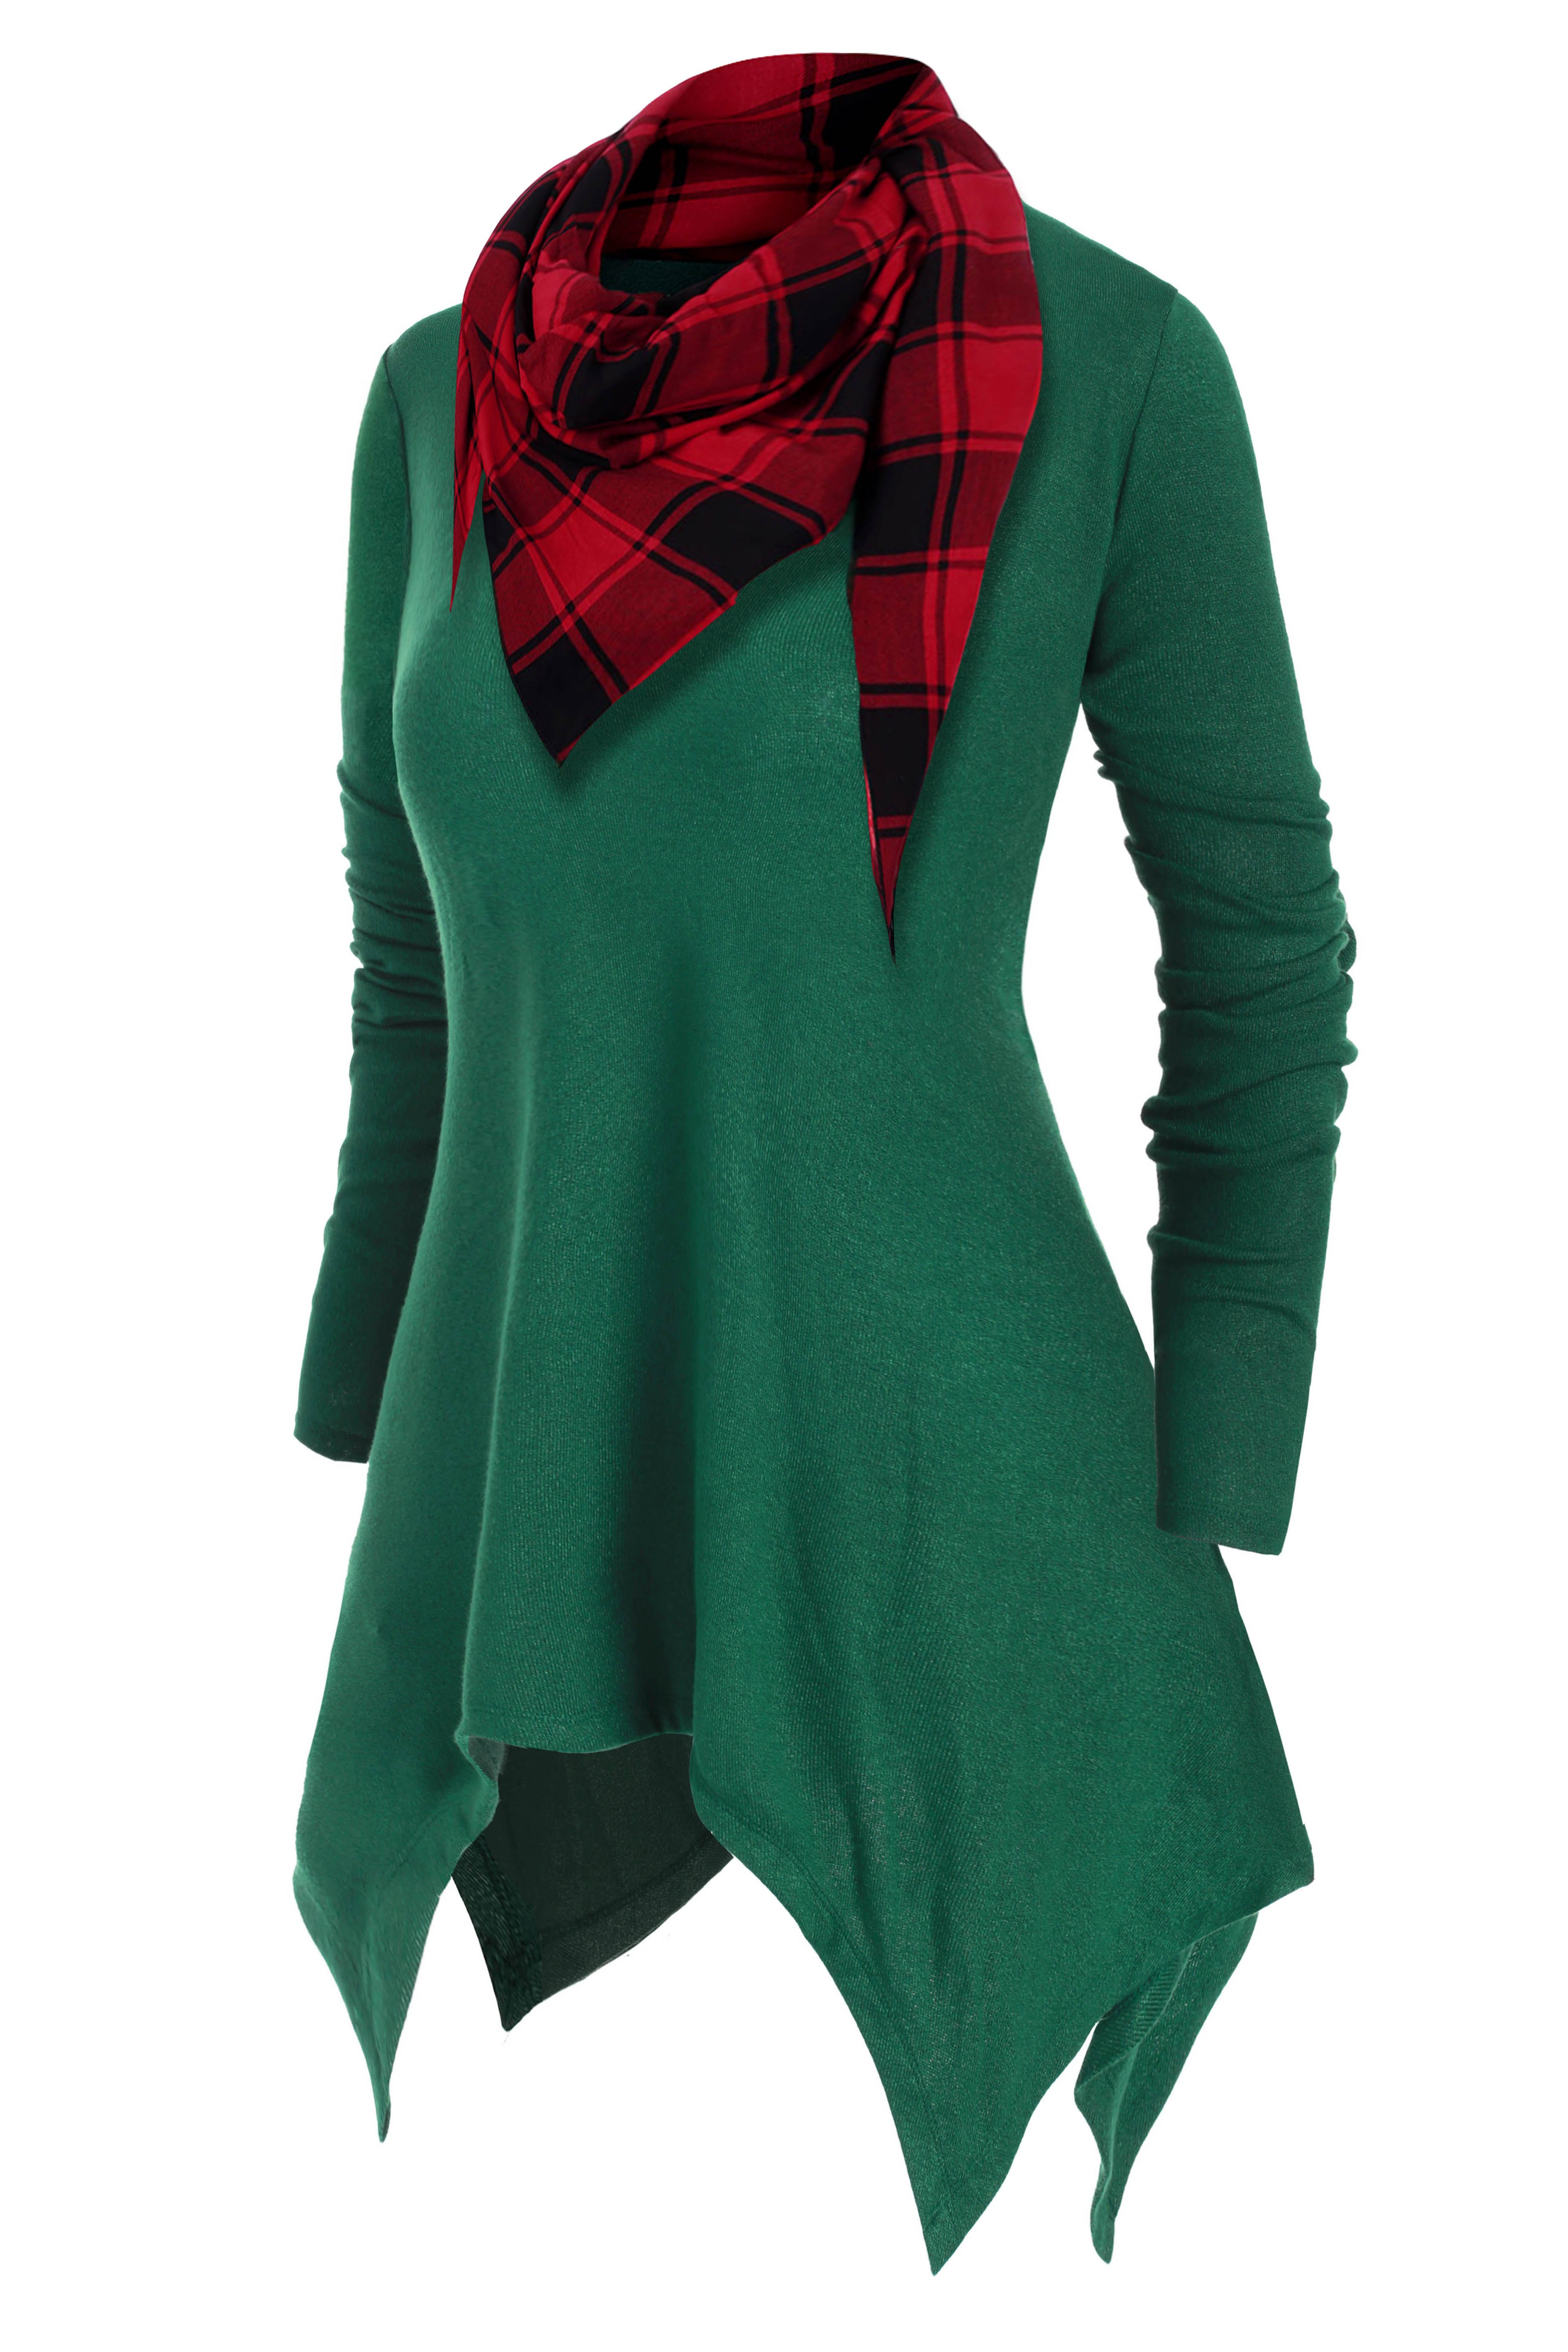 Handkerchief V Neck Plus Size Knitwear With Plaid Scarf